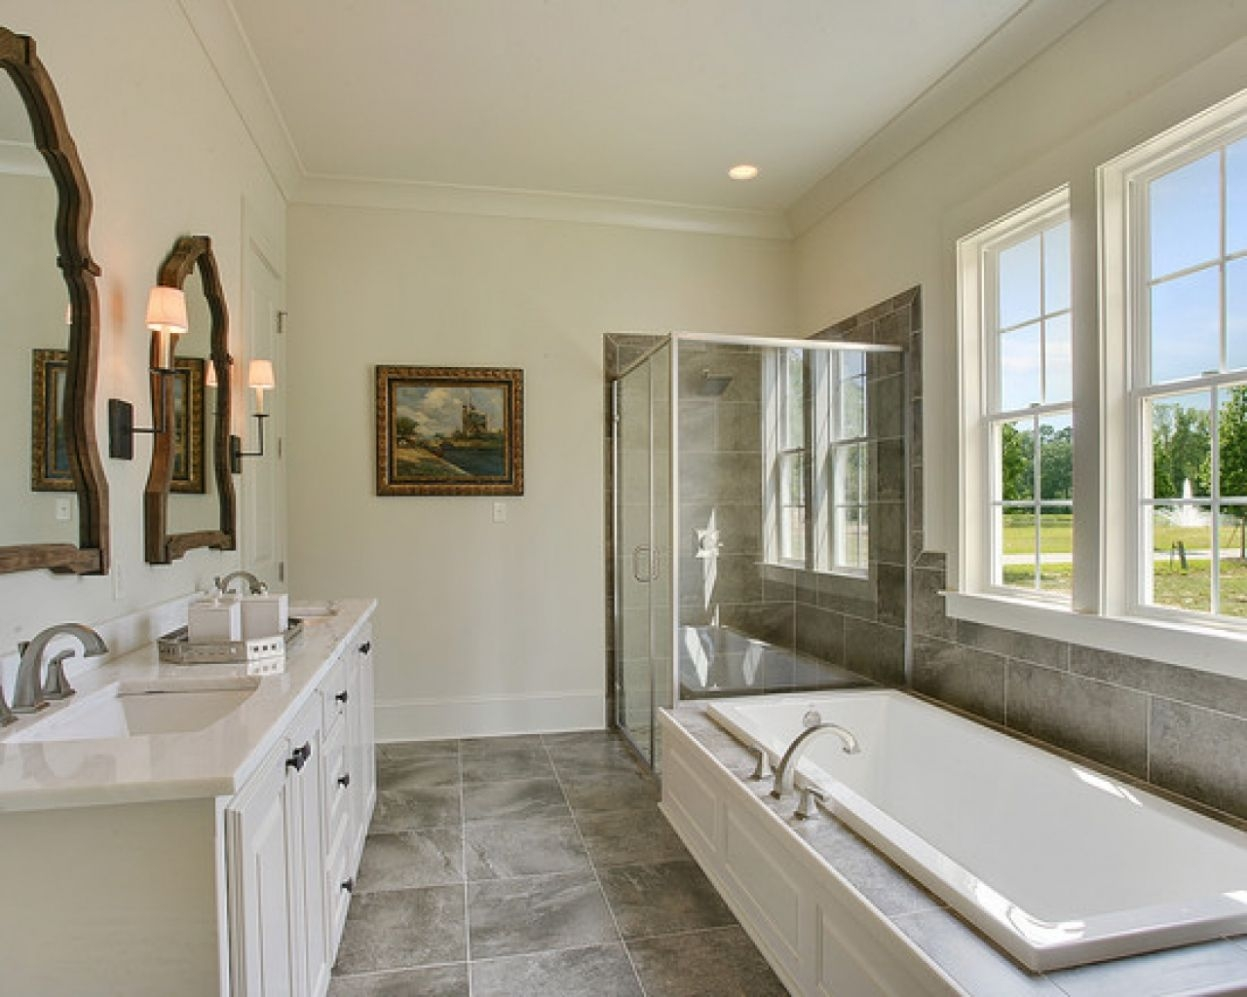 55 Bathroom Remodel New Orleans Interior Paint Color Trends Check